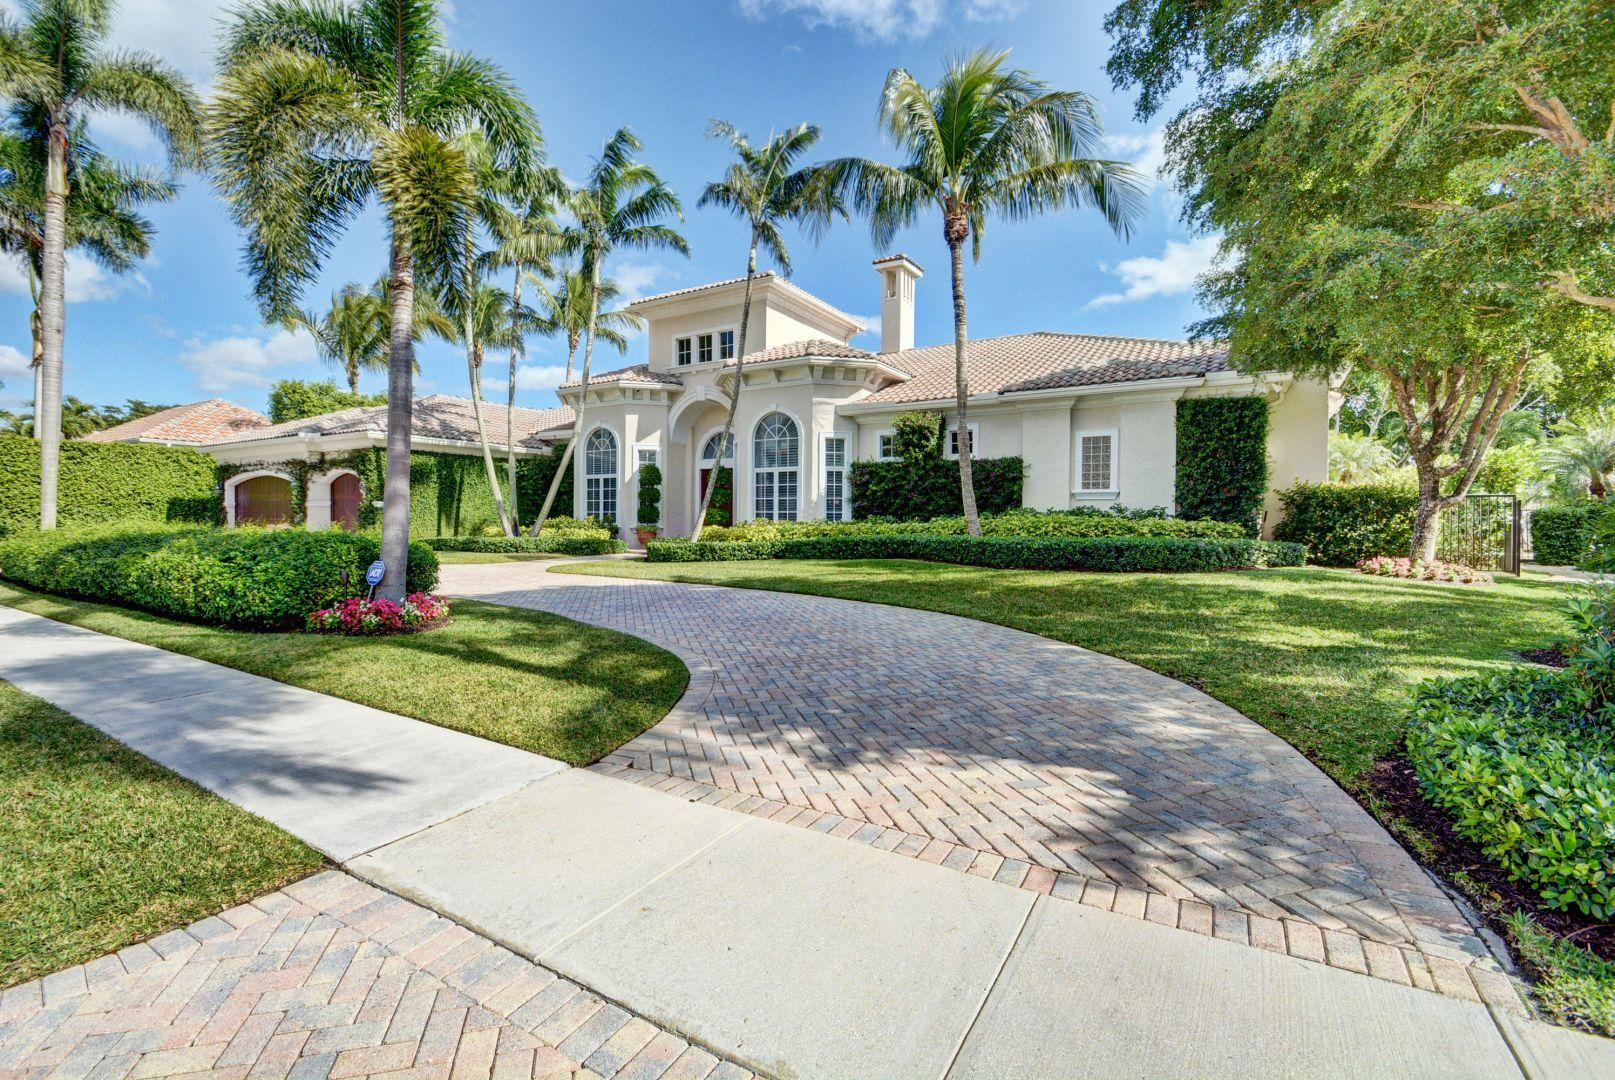 12820 Mizner Way, Wellington, Florida 33414, 4 Bedrooms Bedrooms, ,5.1 BathroomsBathrooms,Single Family,For Sale,Palm Beach Polo,Mizner,RX-10495188